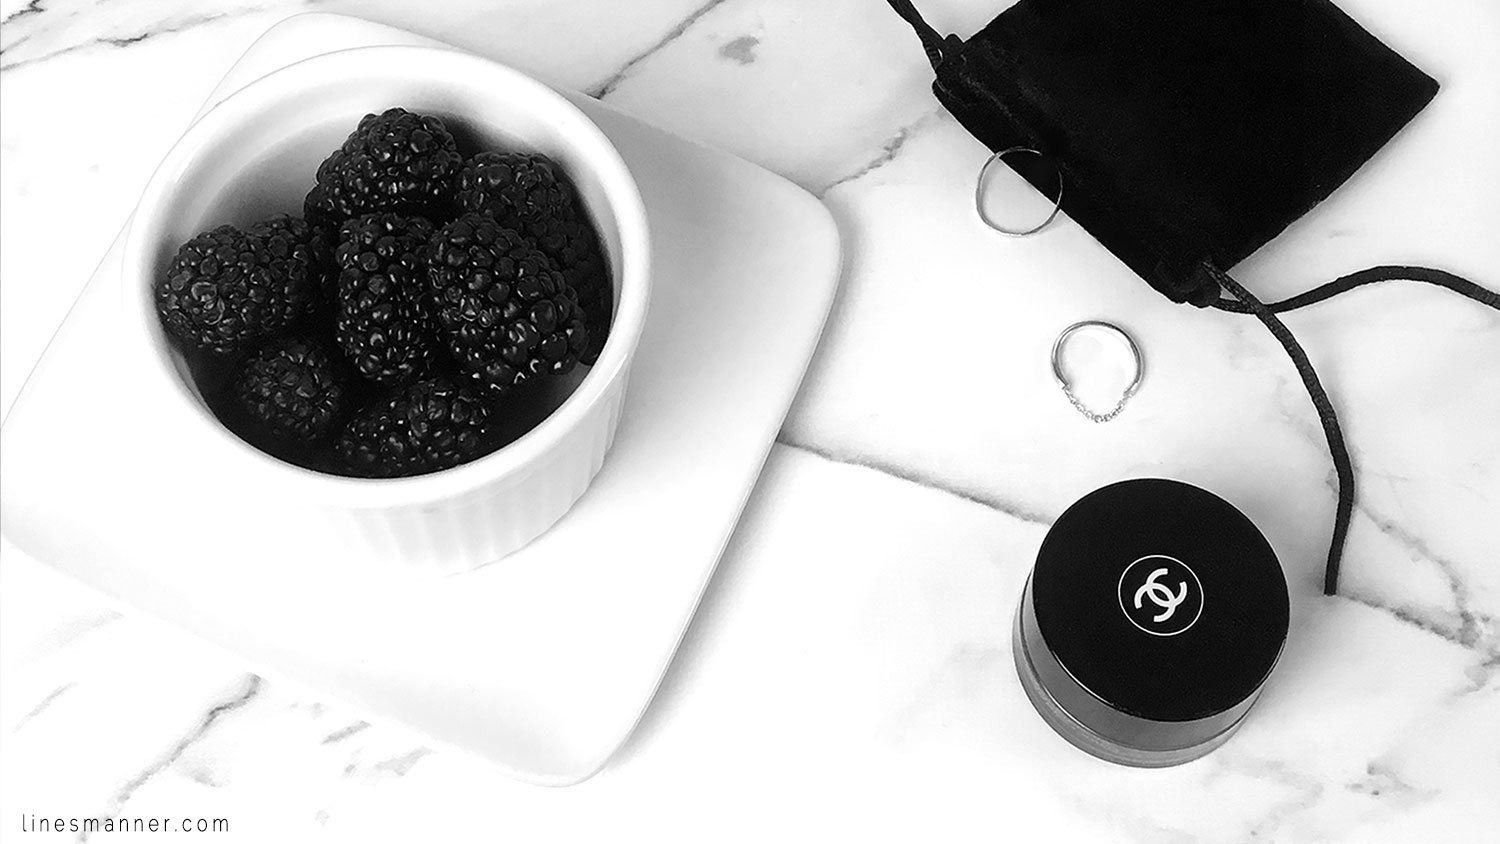 Lines-Manner-Flatlay-Monochrome-Essentials-Details-Jewellery-Hardware-Morning_routine-Black_and_white-White-Minimal-Impact-Classics-Timeless-Simplicity-1